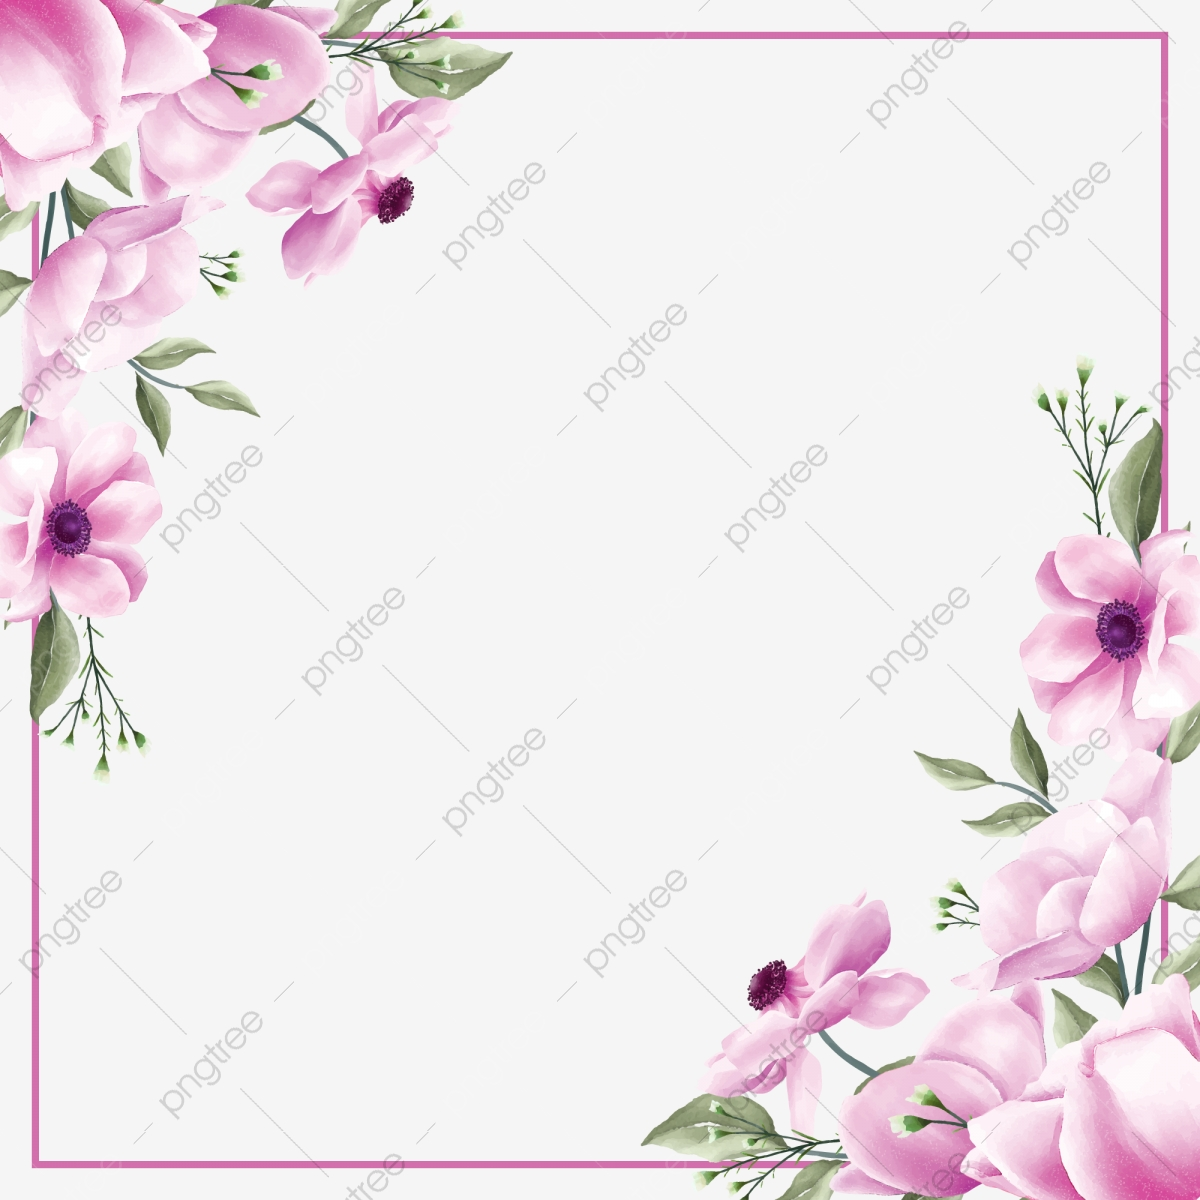 Romantic Purple Flowers Frame For Wedding Cards, Wedding, Invitation, Invite  PNG and Vector with Transparent Background for Free Download